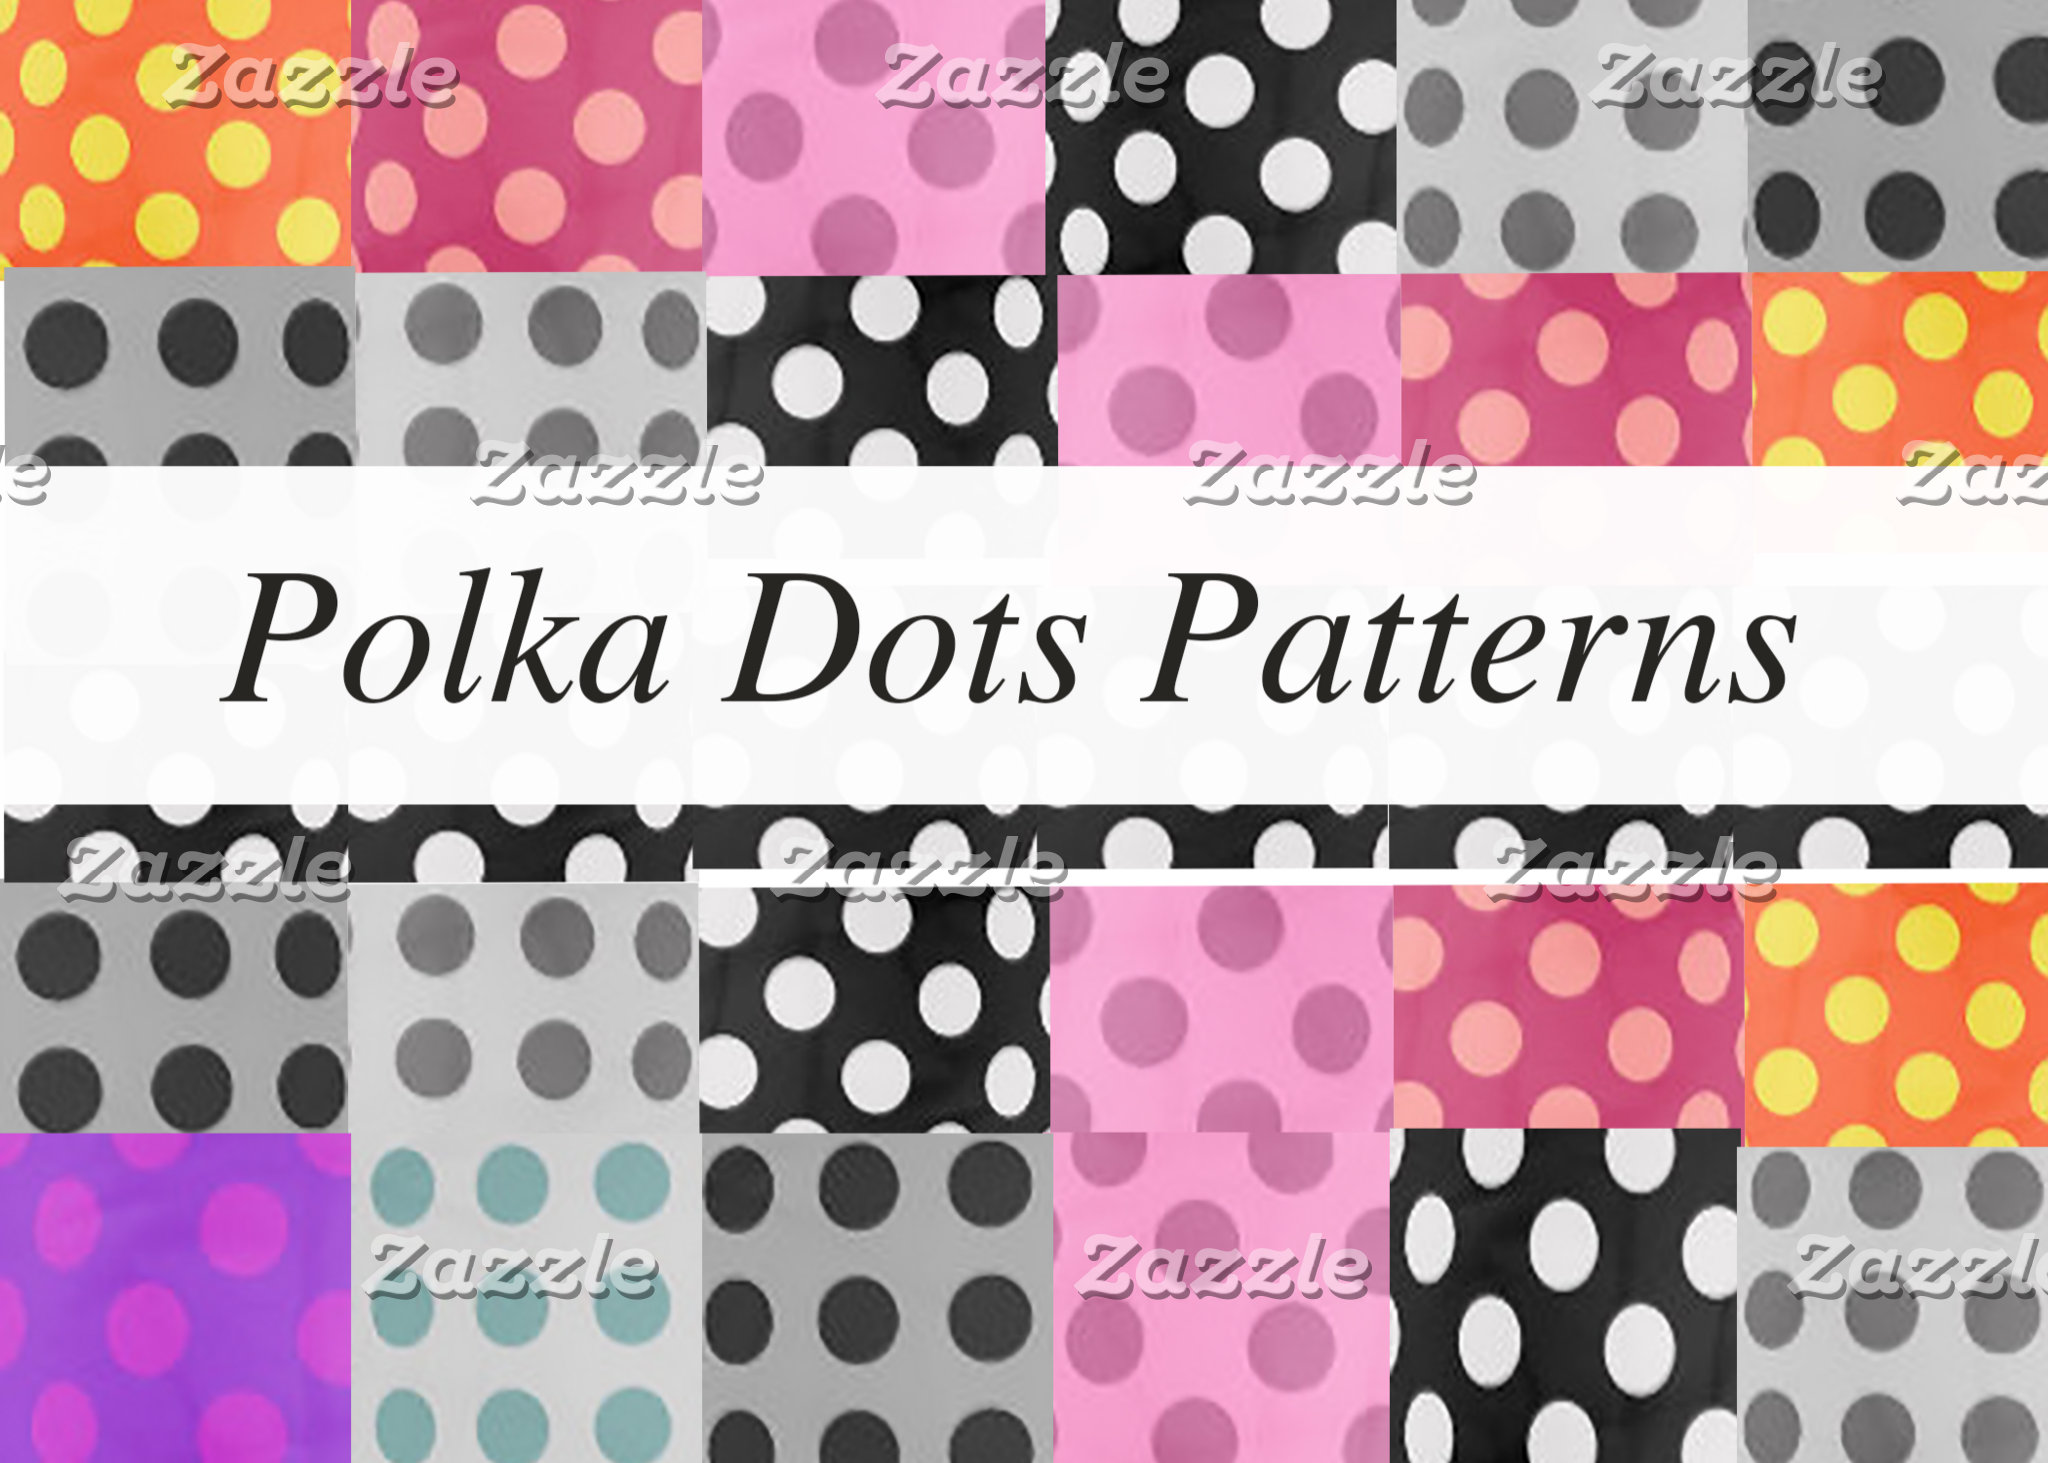 Polka Dots Patterns